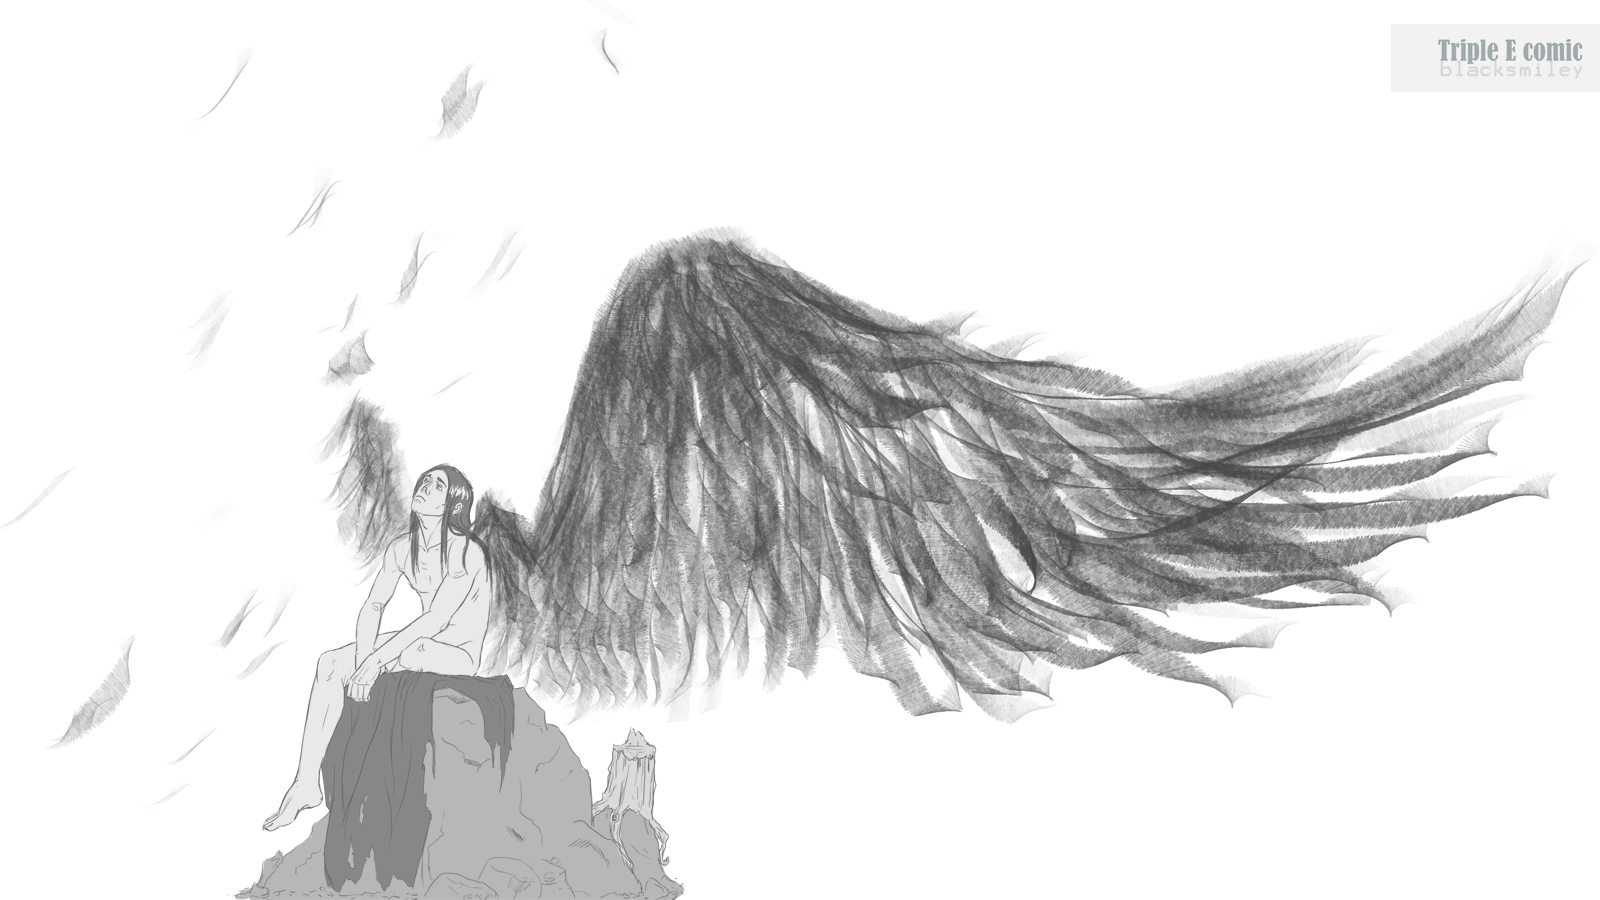 Winged-Character-Sketch-by-Blacksmiley